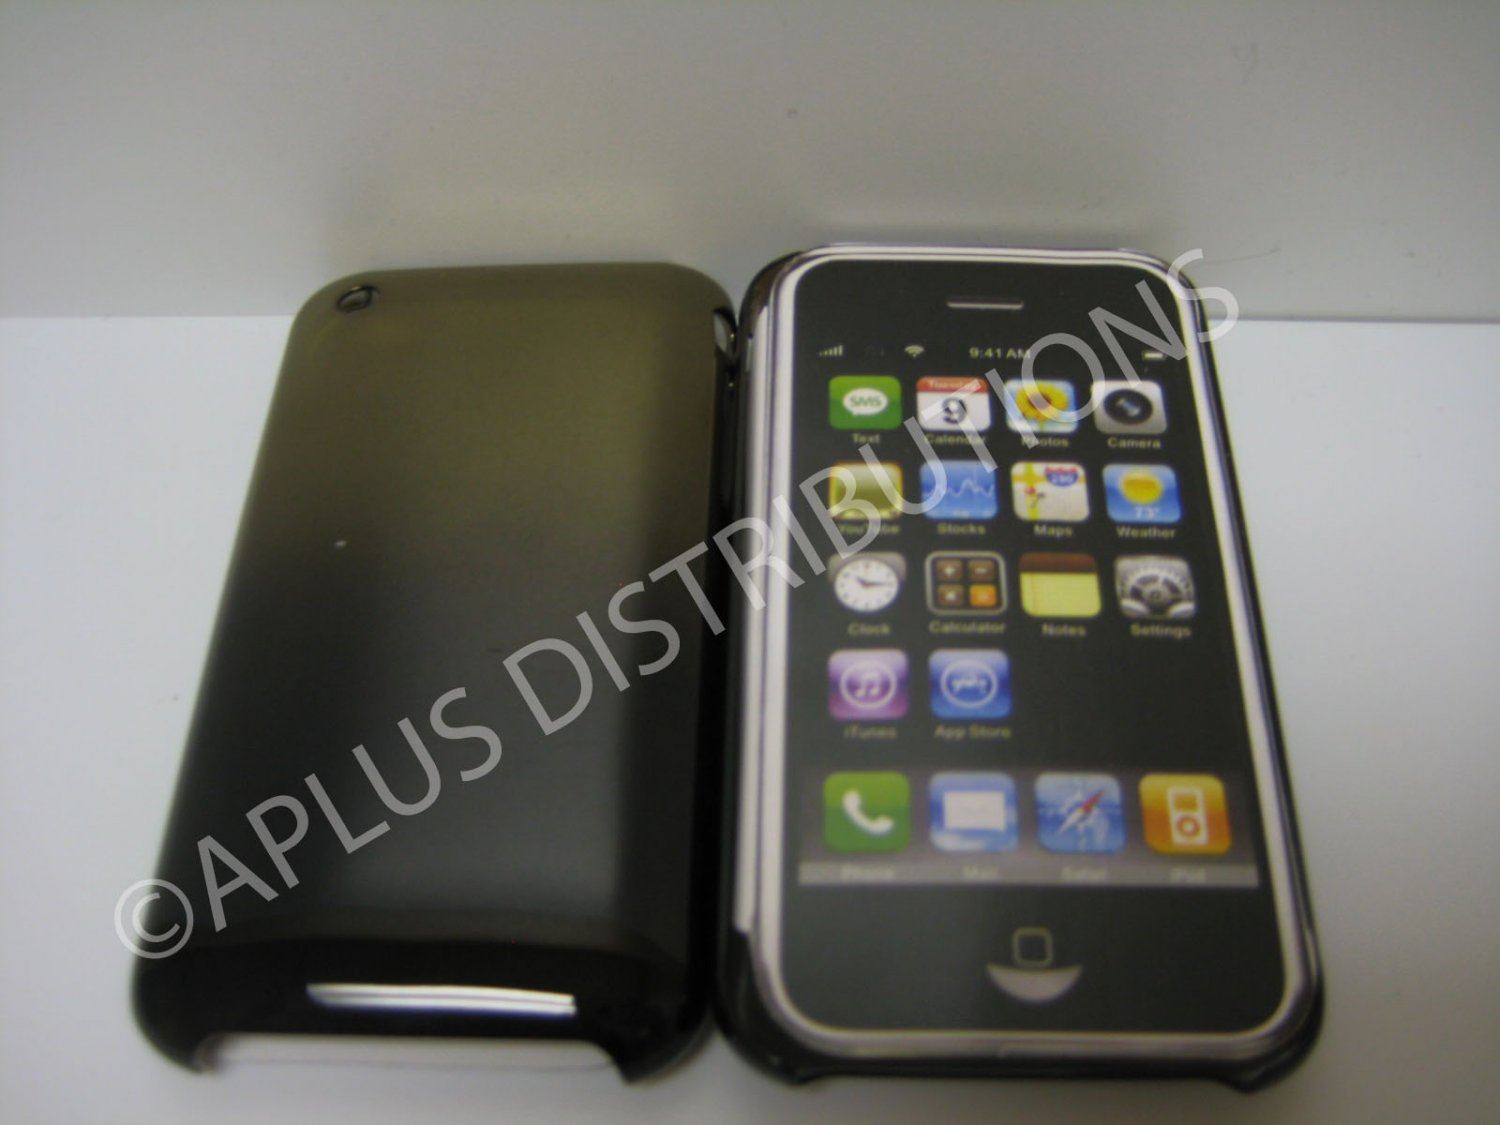 New Black Chrome Sun Design Hard Protective Cover For iPhone 3G 3GS - (0076)